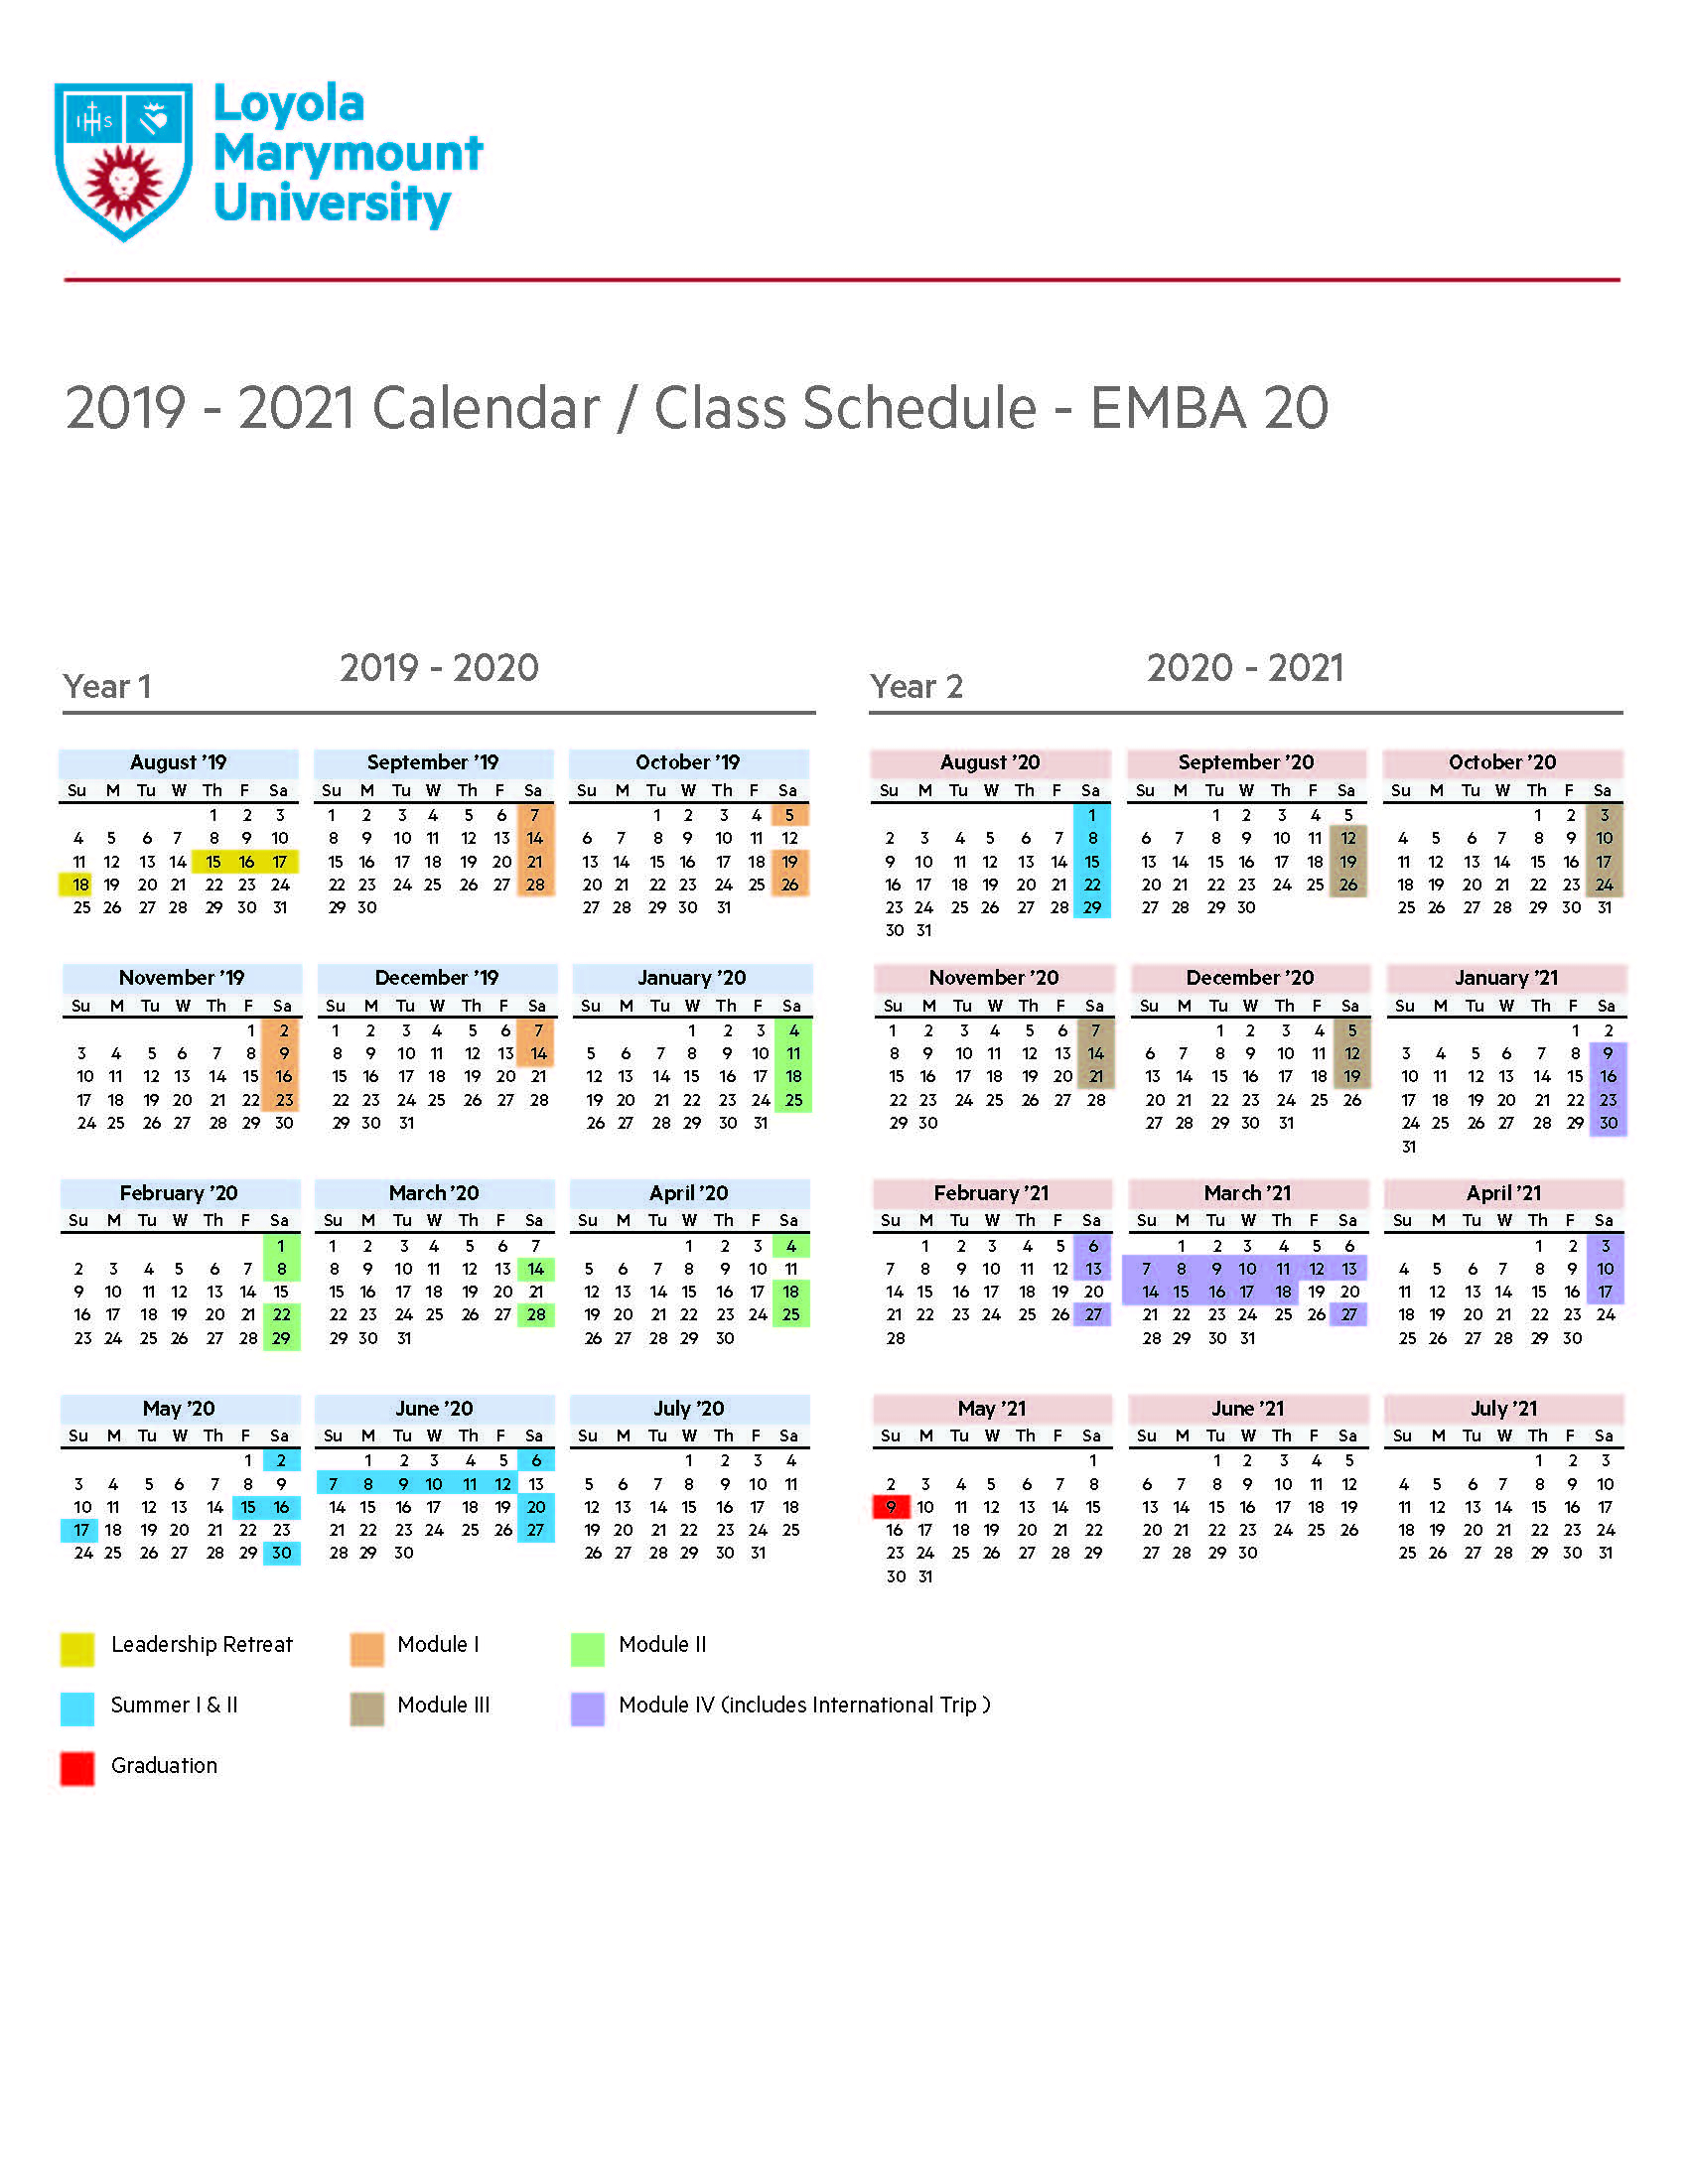 Program Calendar - Loyola Marymount University